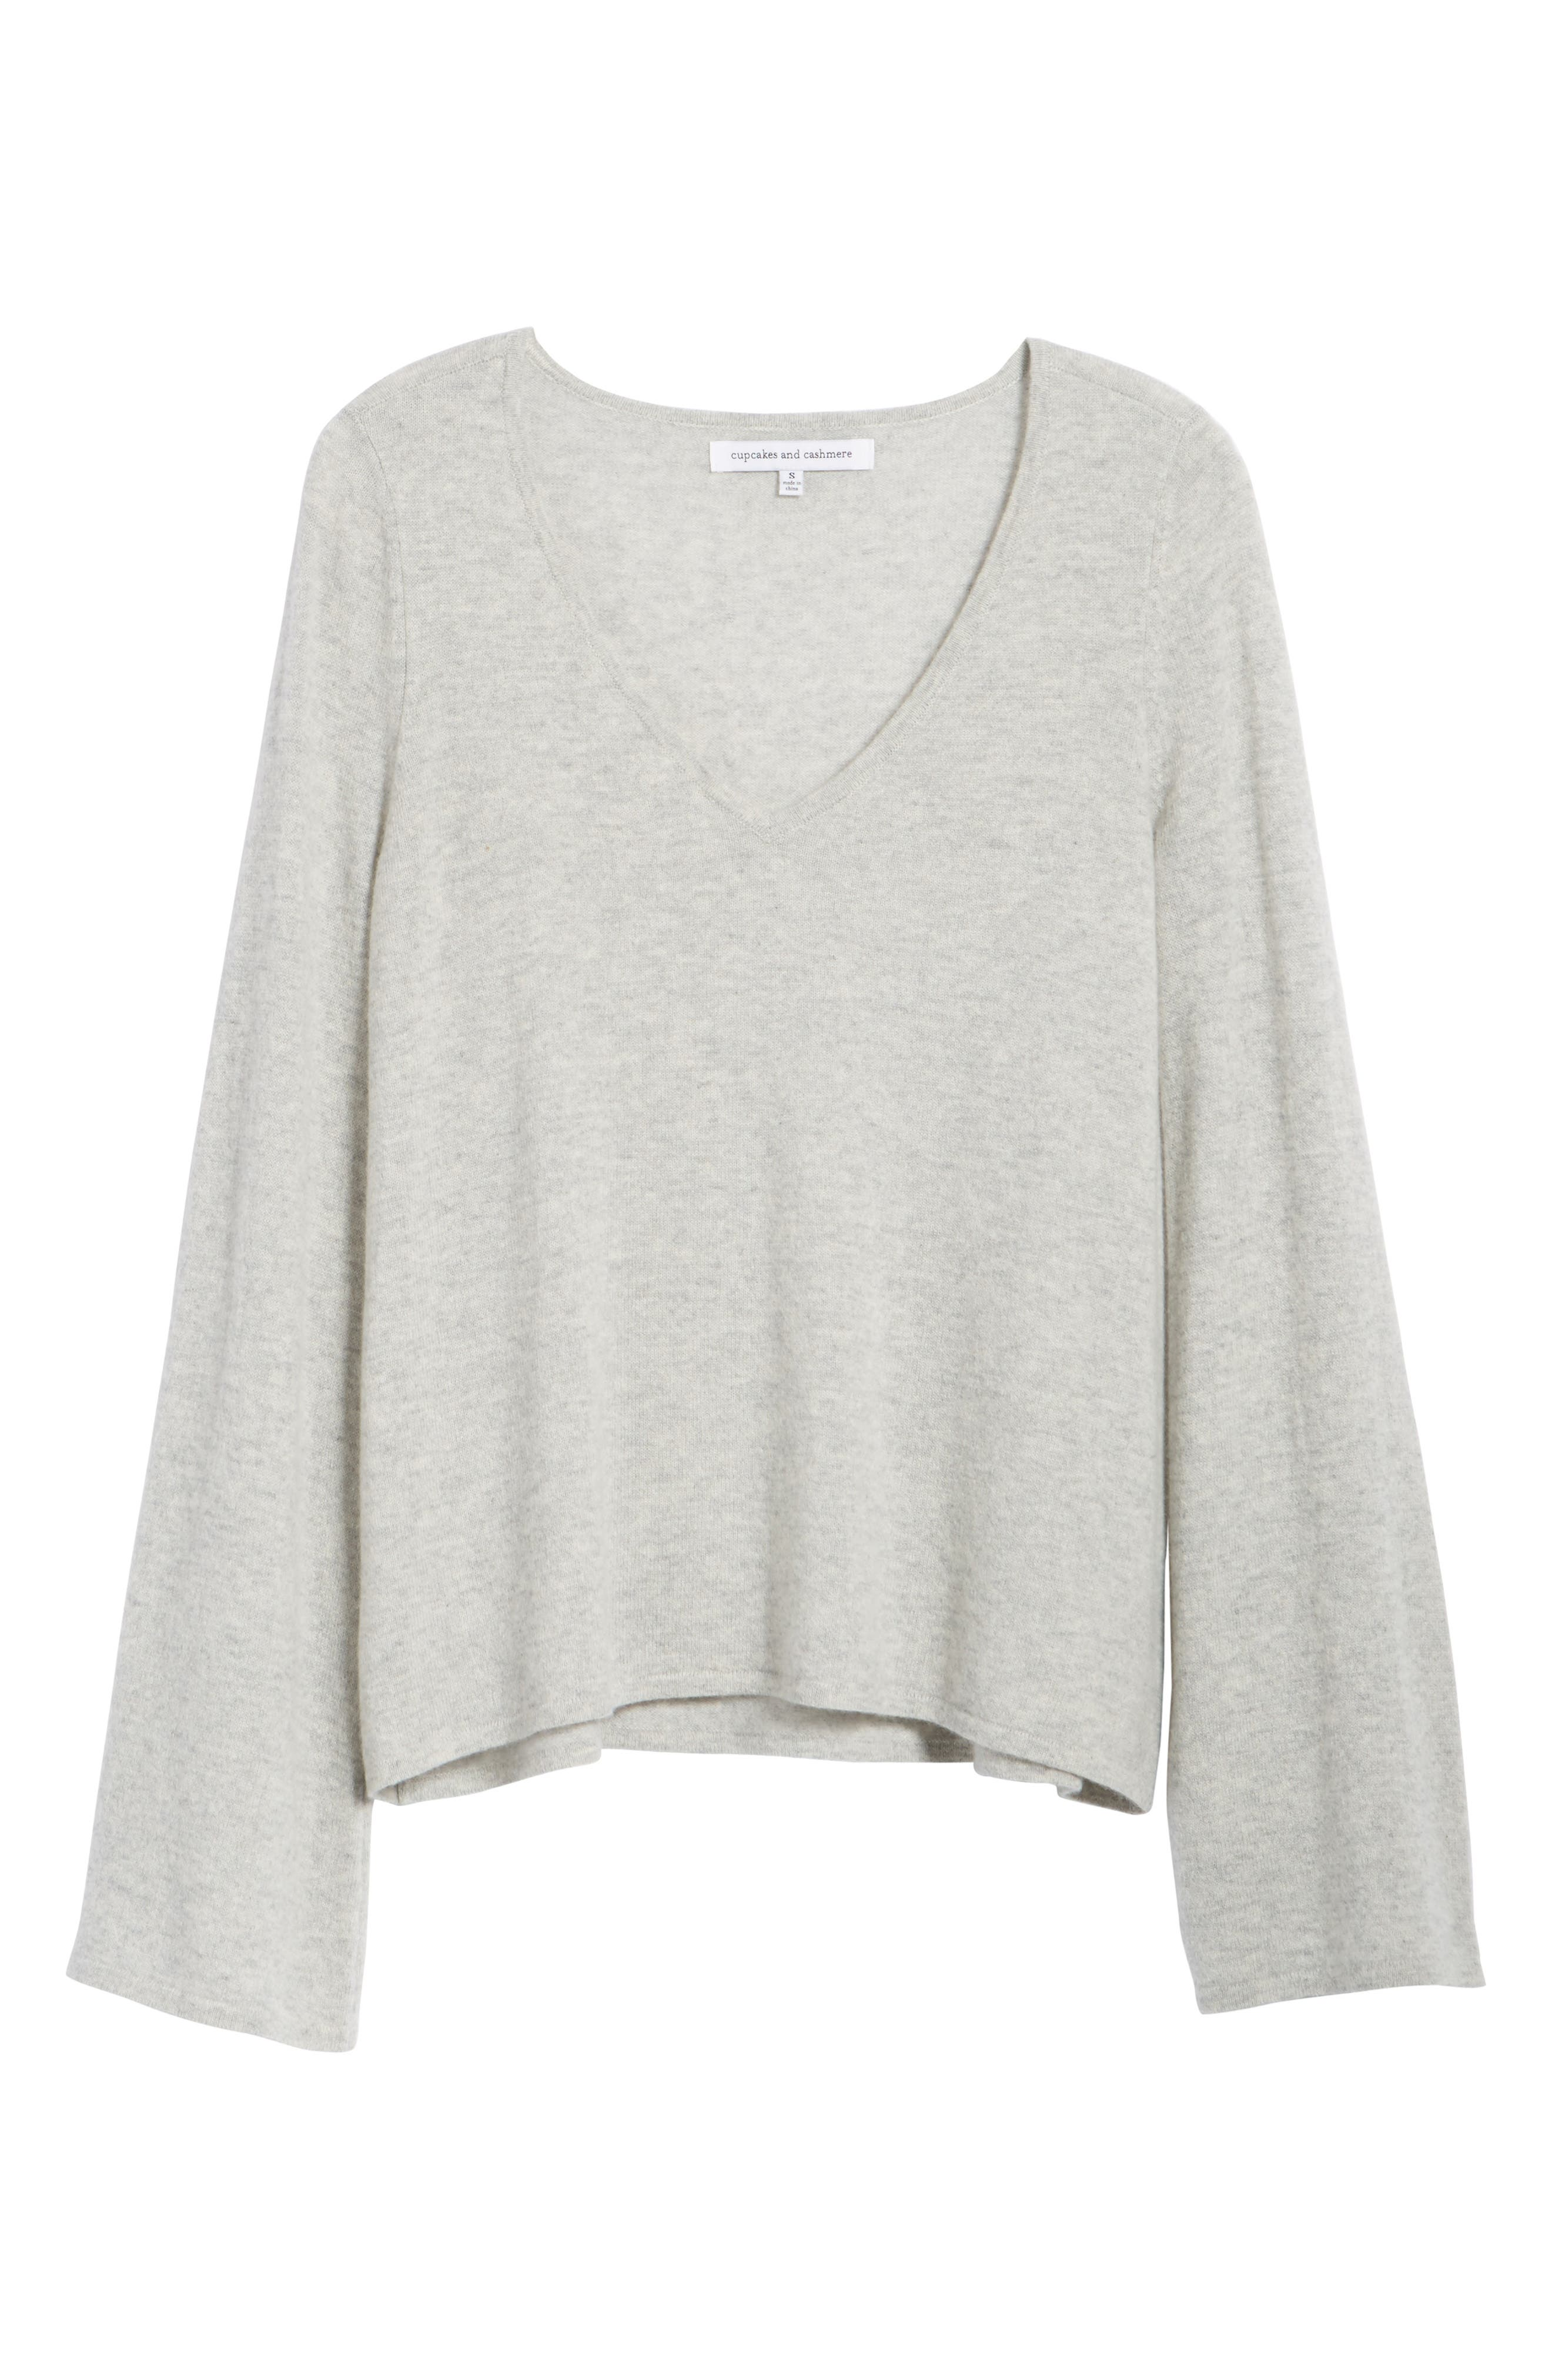 Marylee Cashmere Top,                             Alternate thumbnail 6, color,                             Light Heather Grey